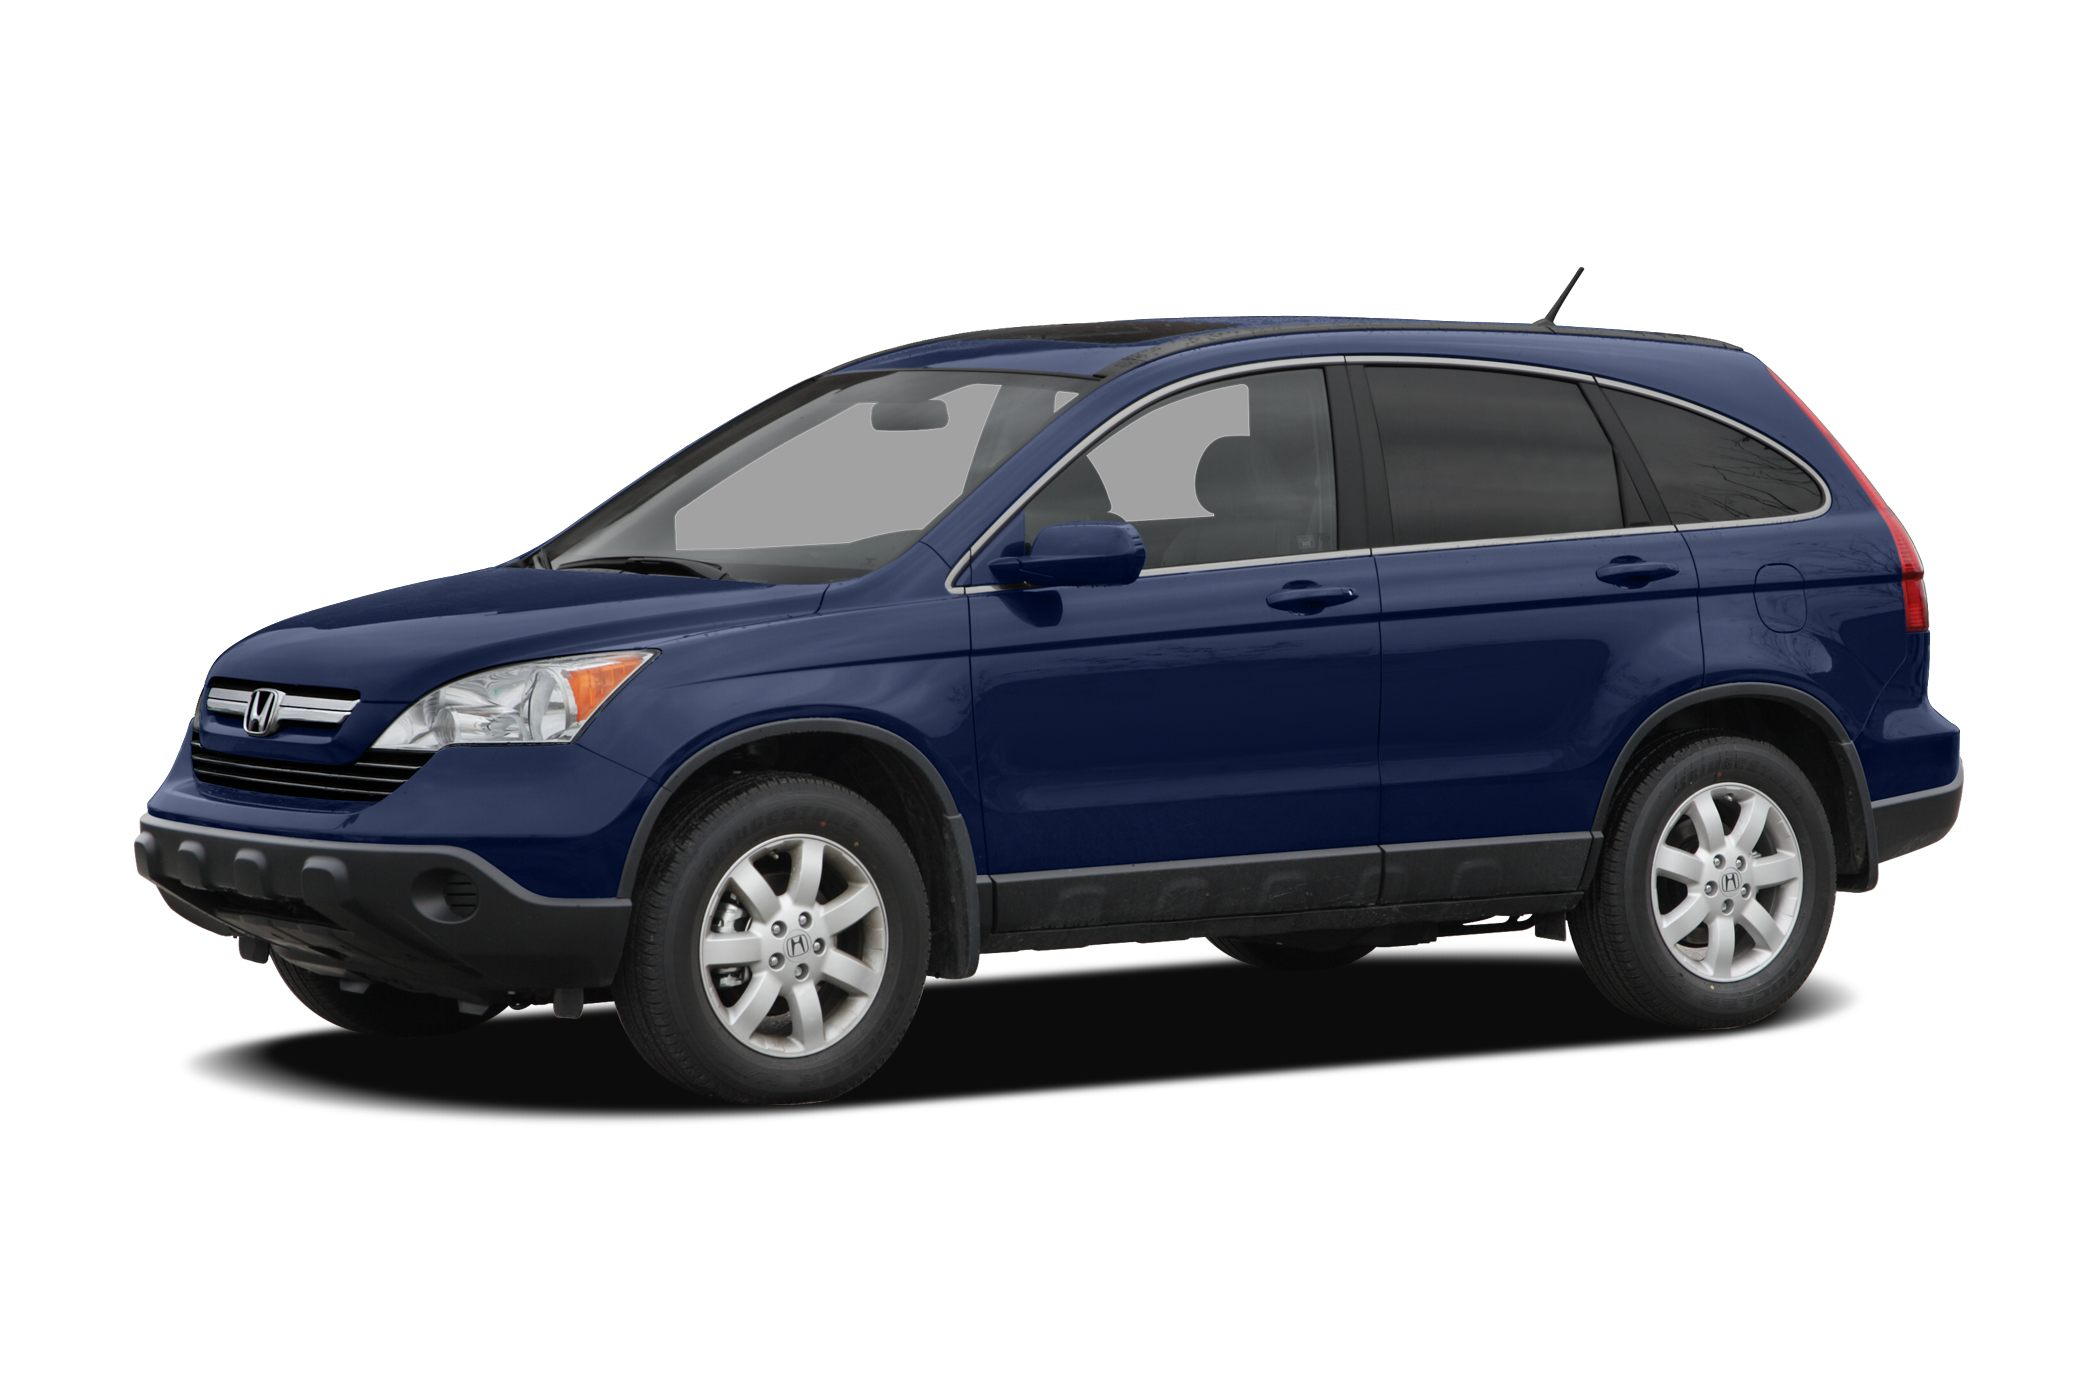 Cars for Sale Under 10000 In Nc Best Of Greenville Nc Used Cars for Sale Less Than 10 000 Dollars